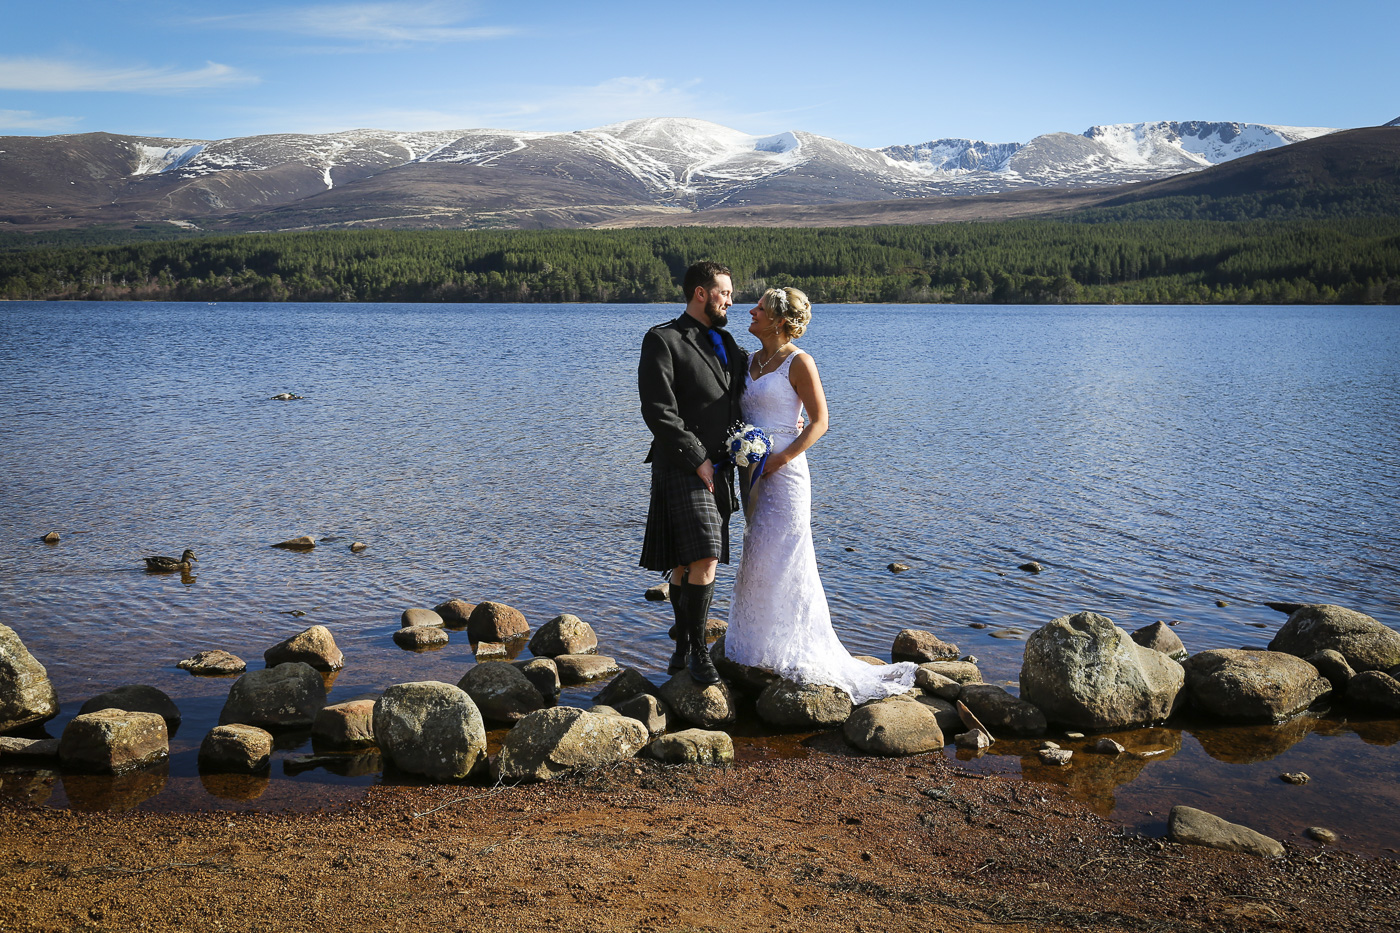 Wedding photography at The Hilton Coylumbridge and Loch Morlich-0100